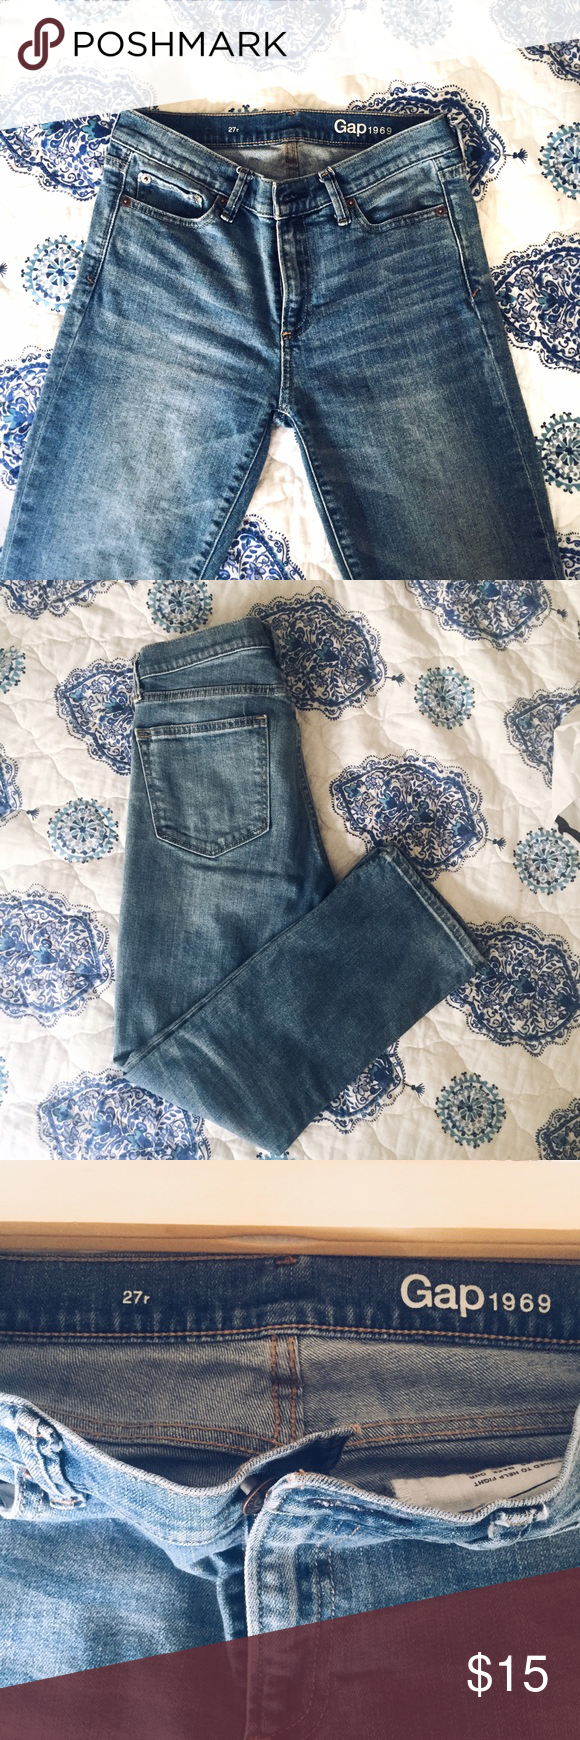 GAP MID/HIGH-WASTED Worn once. No flaws. Mid/High-wasted. Very flattering. Gap Pants Ankle & Cropped